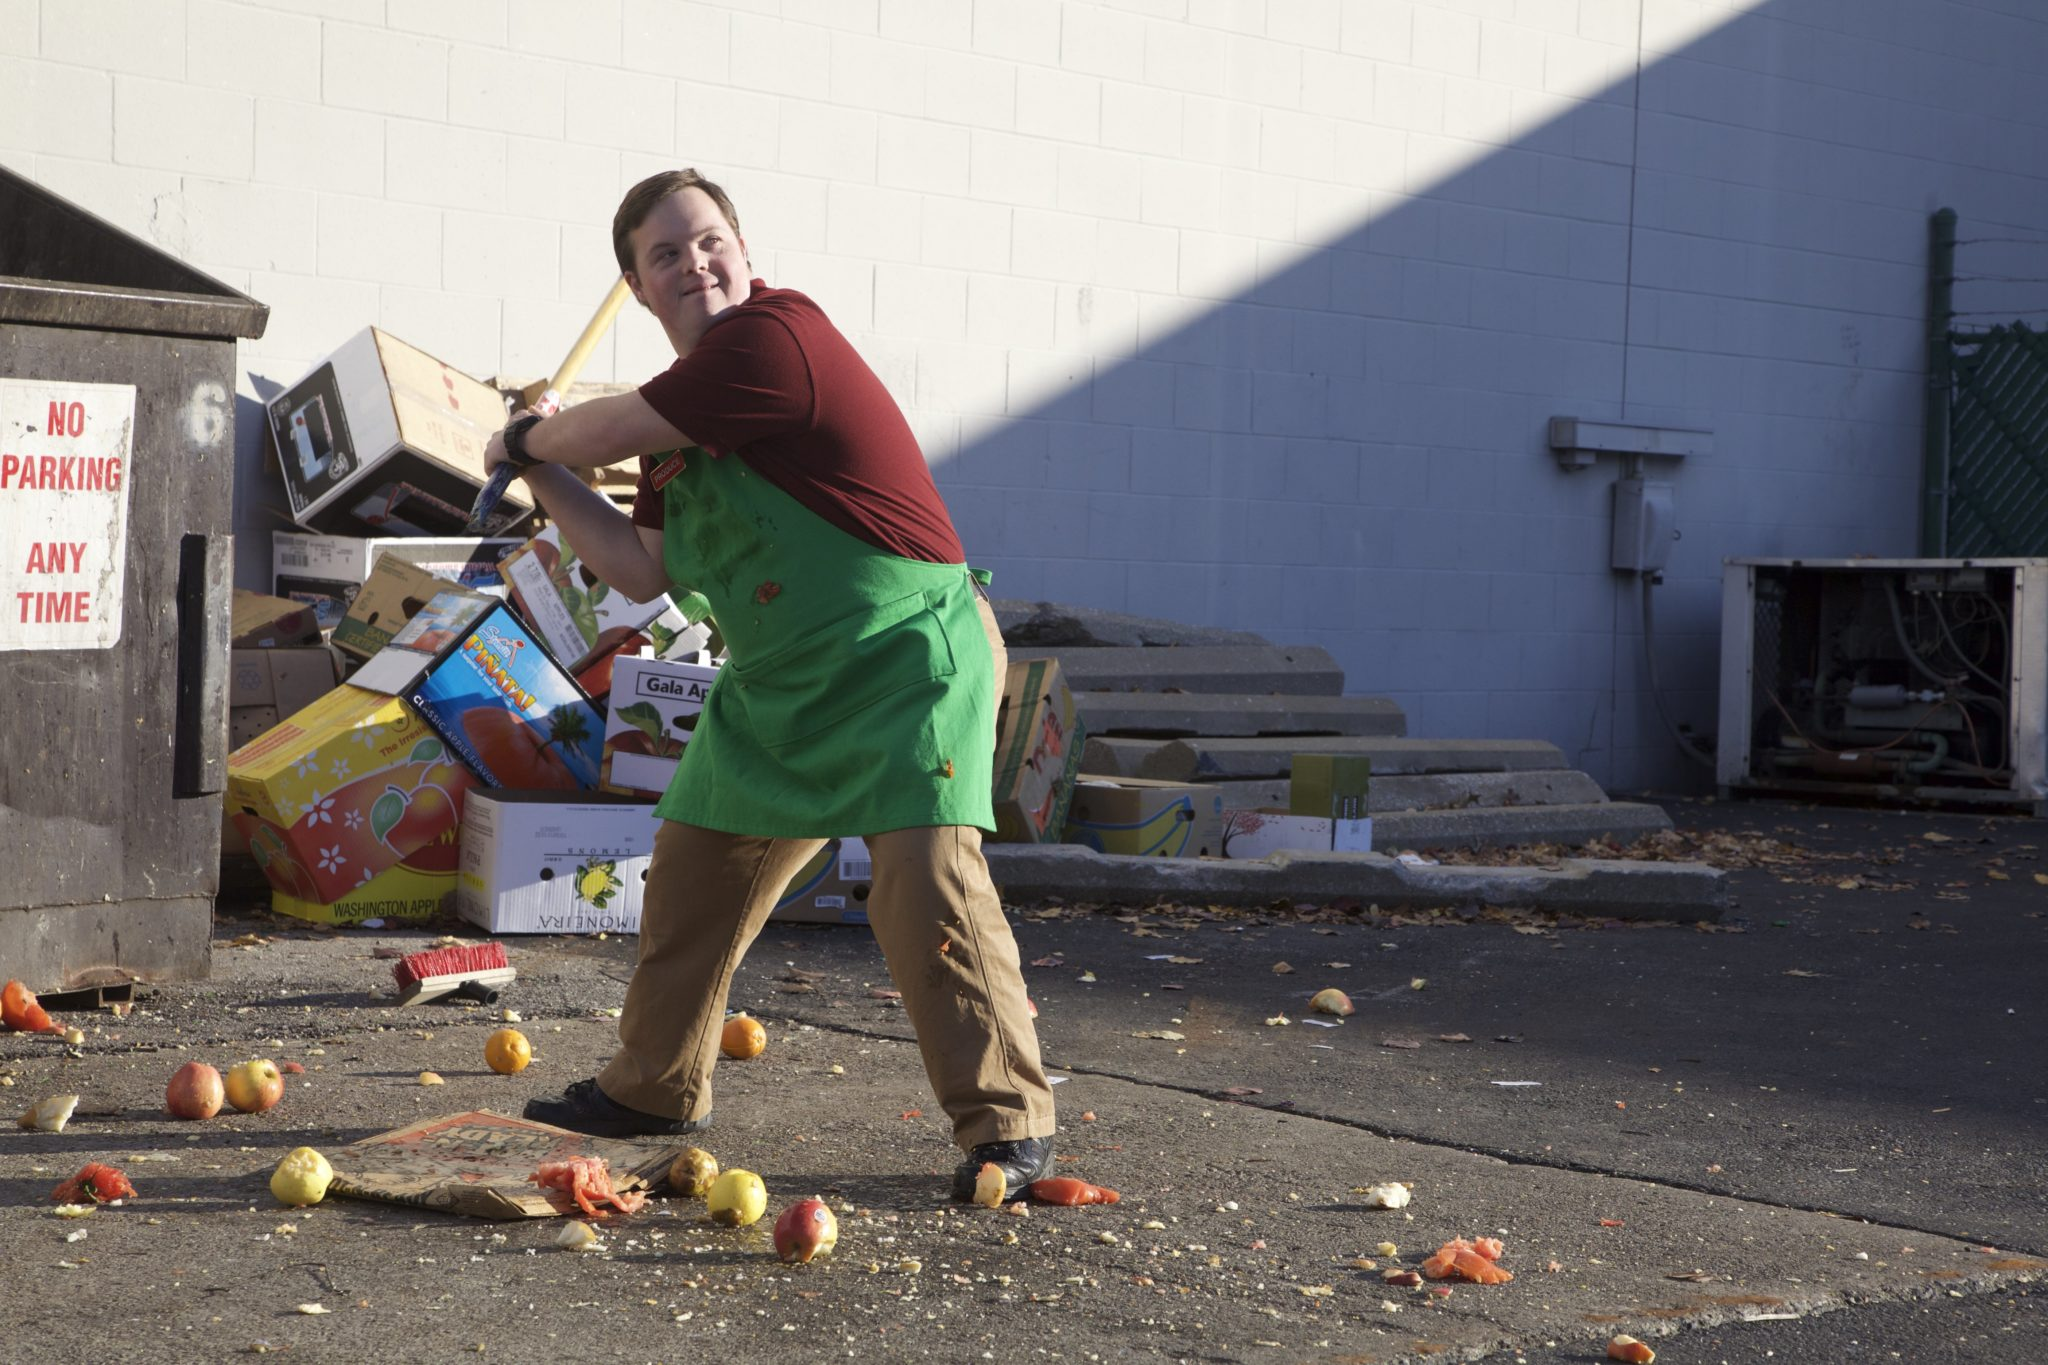 Veggieball - Where Hope Grows